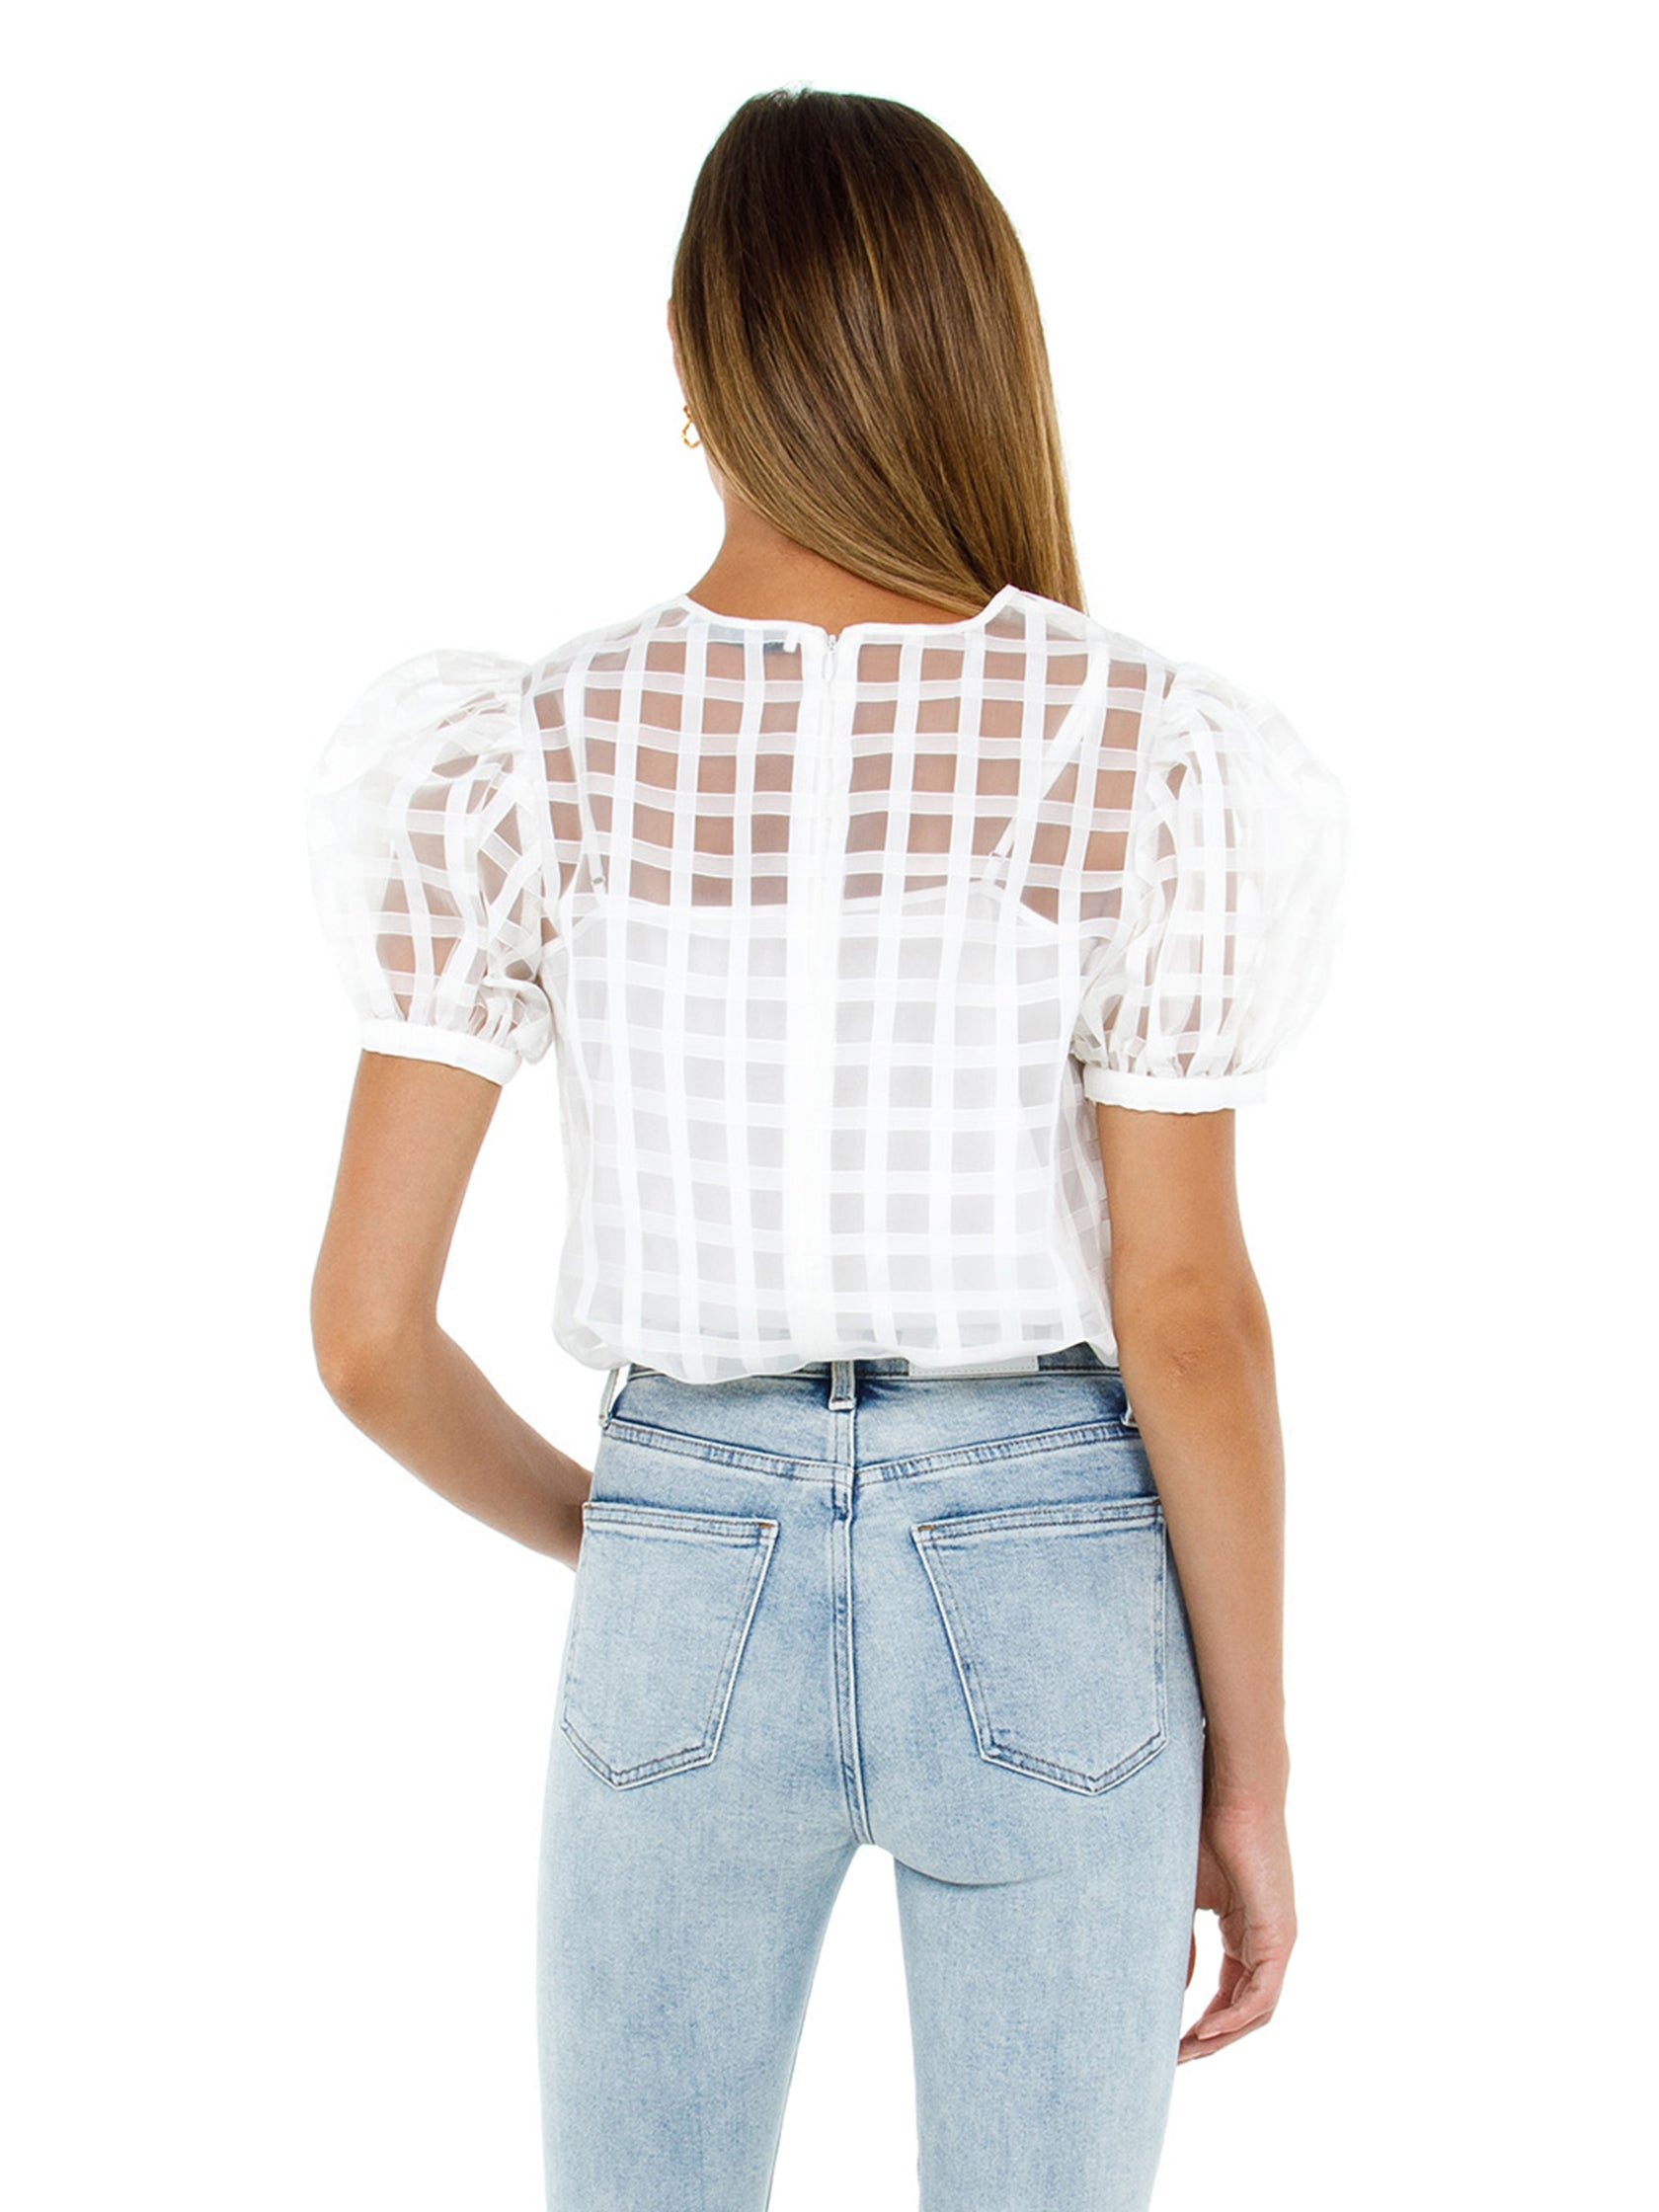 Women outfit in a top rental from English Factory called Plaid See Through Top